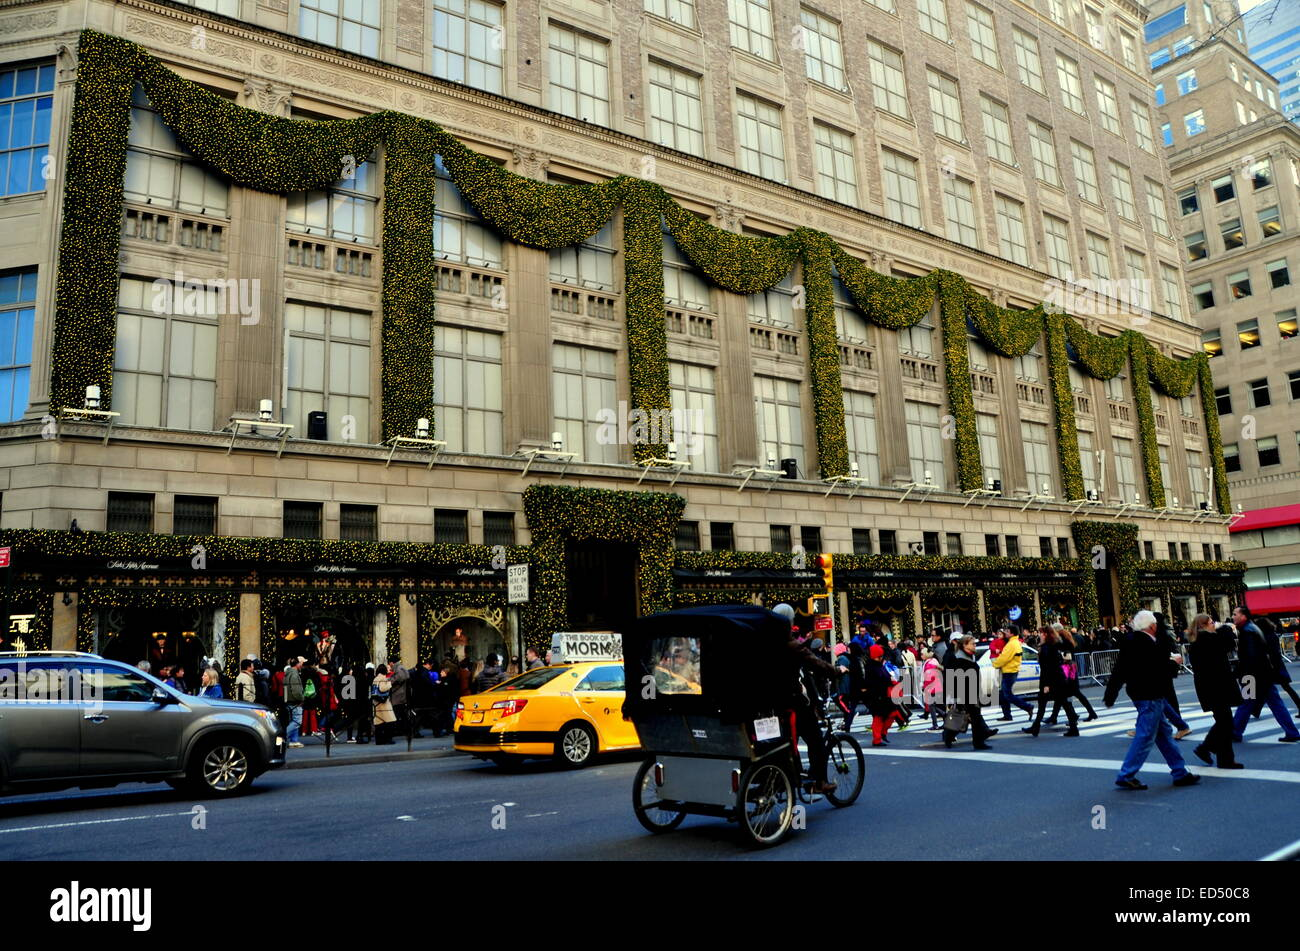 New York City: A Pedicab Taxi Passes Legendary Saks Fifth Avenue Department  Store Adorned WIth Christmas Decorations